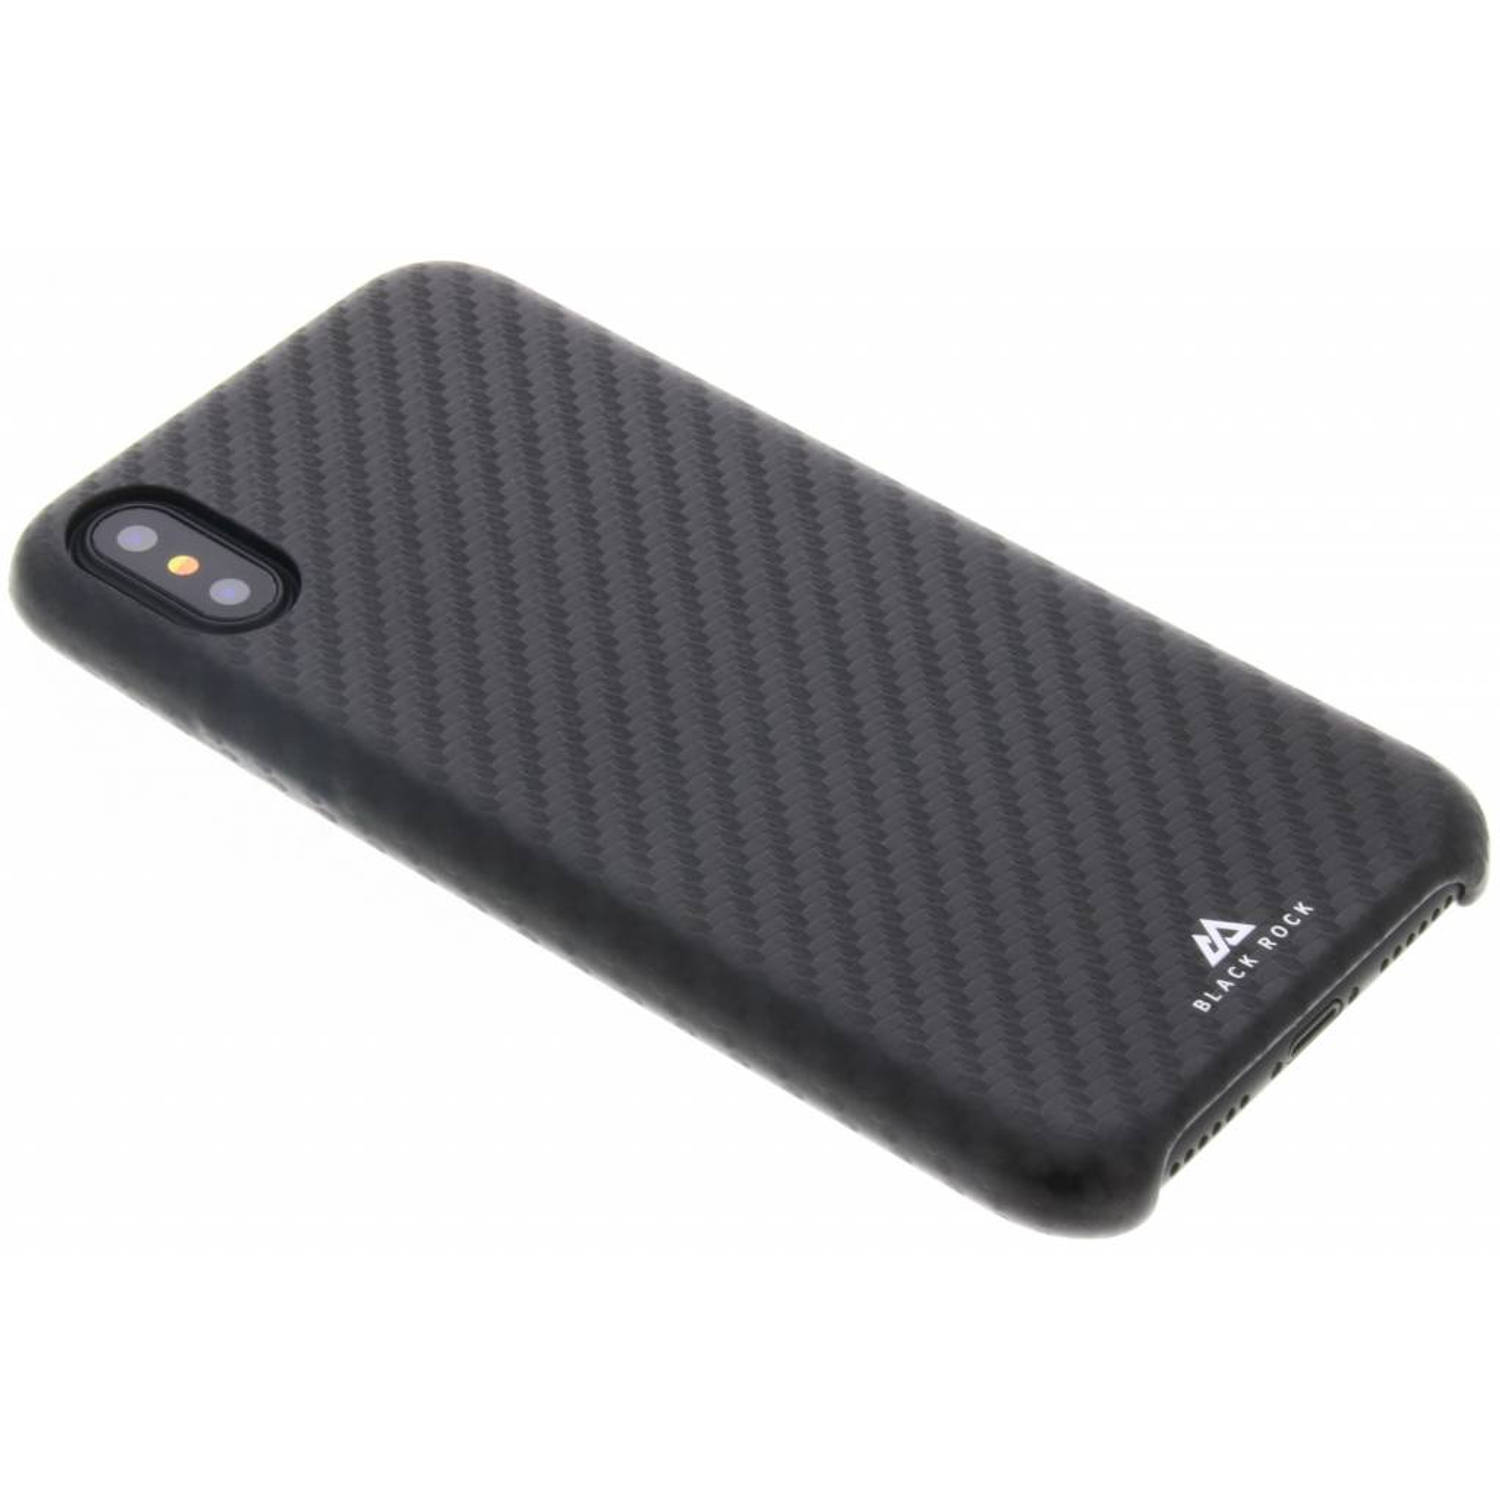 Zwarte Flex Carbon Case voor de iPhone Xs / X